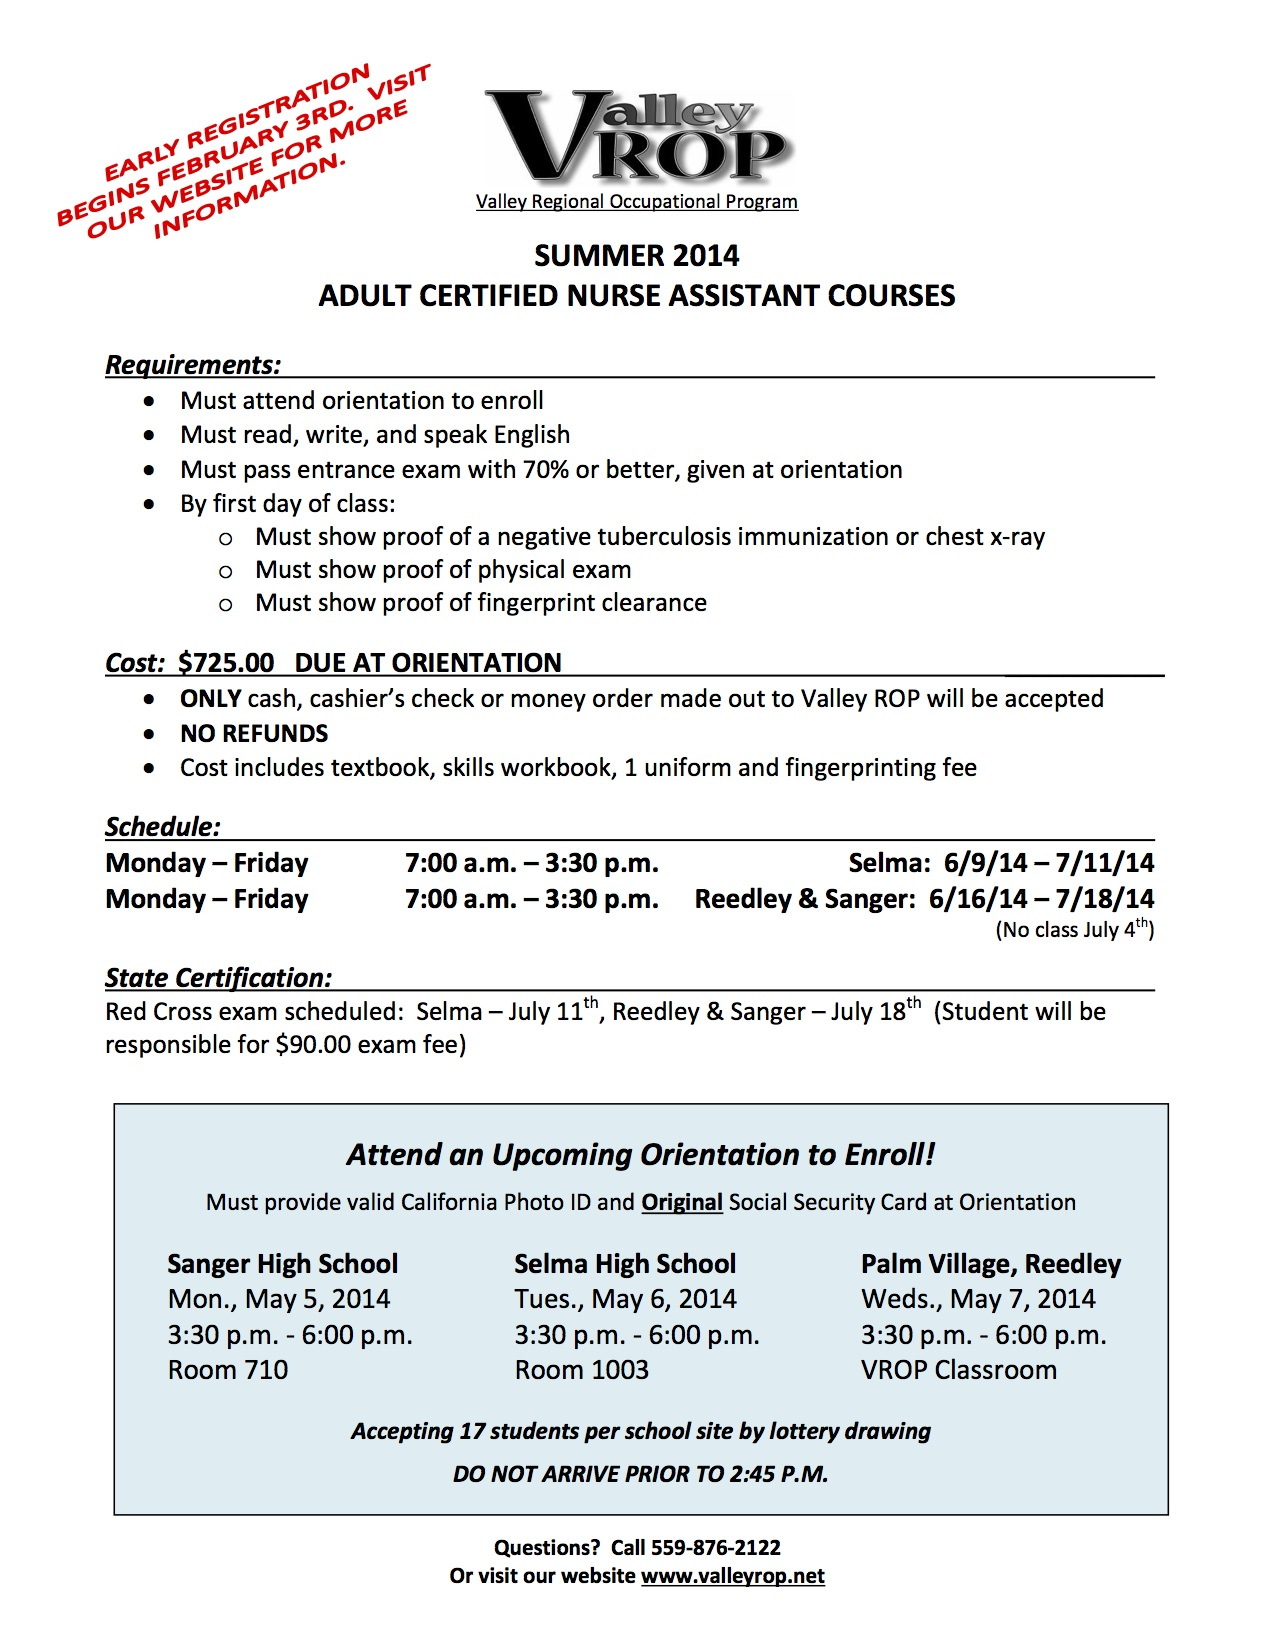 Valley Rop Summer 2014 Adult Certified Nurse Assistant Courses